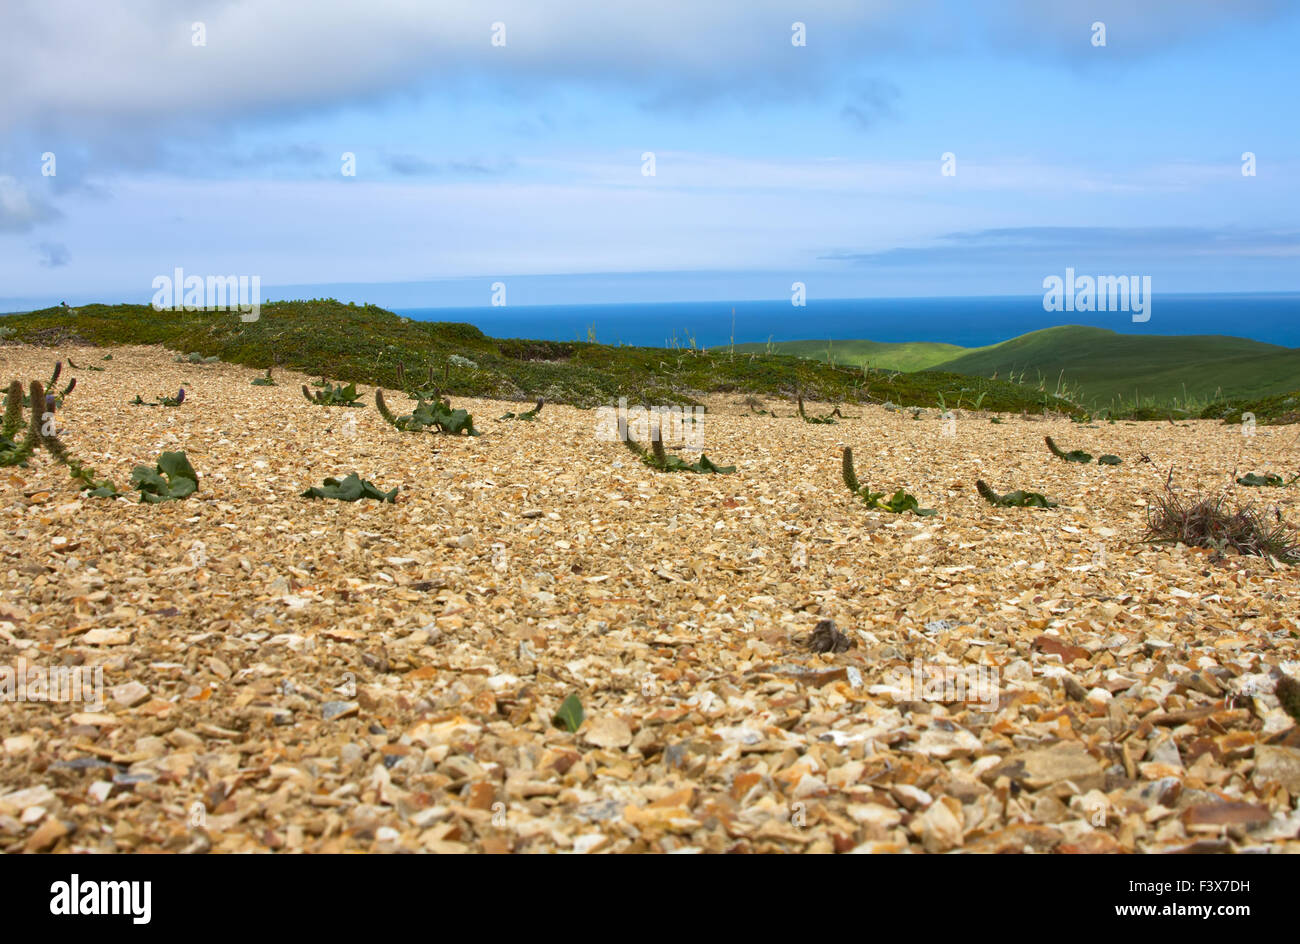 Bering Stock Photos & Bering Stock Images - Alamy